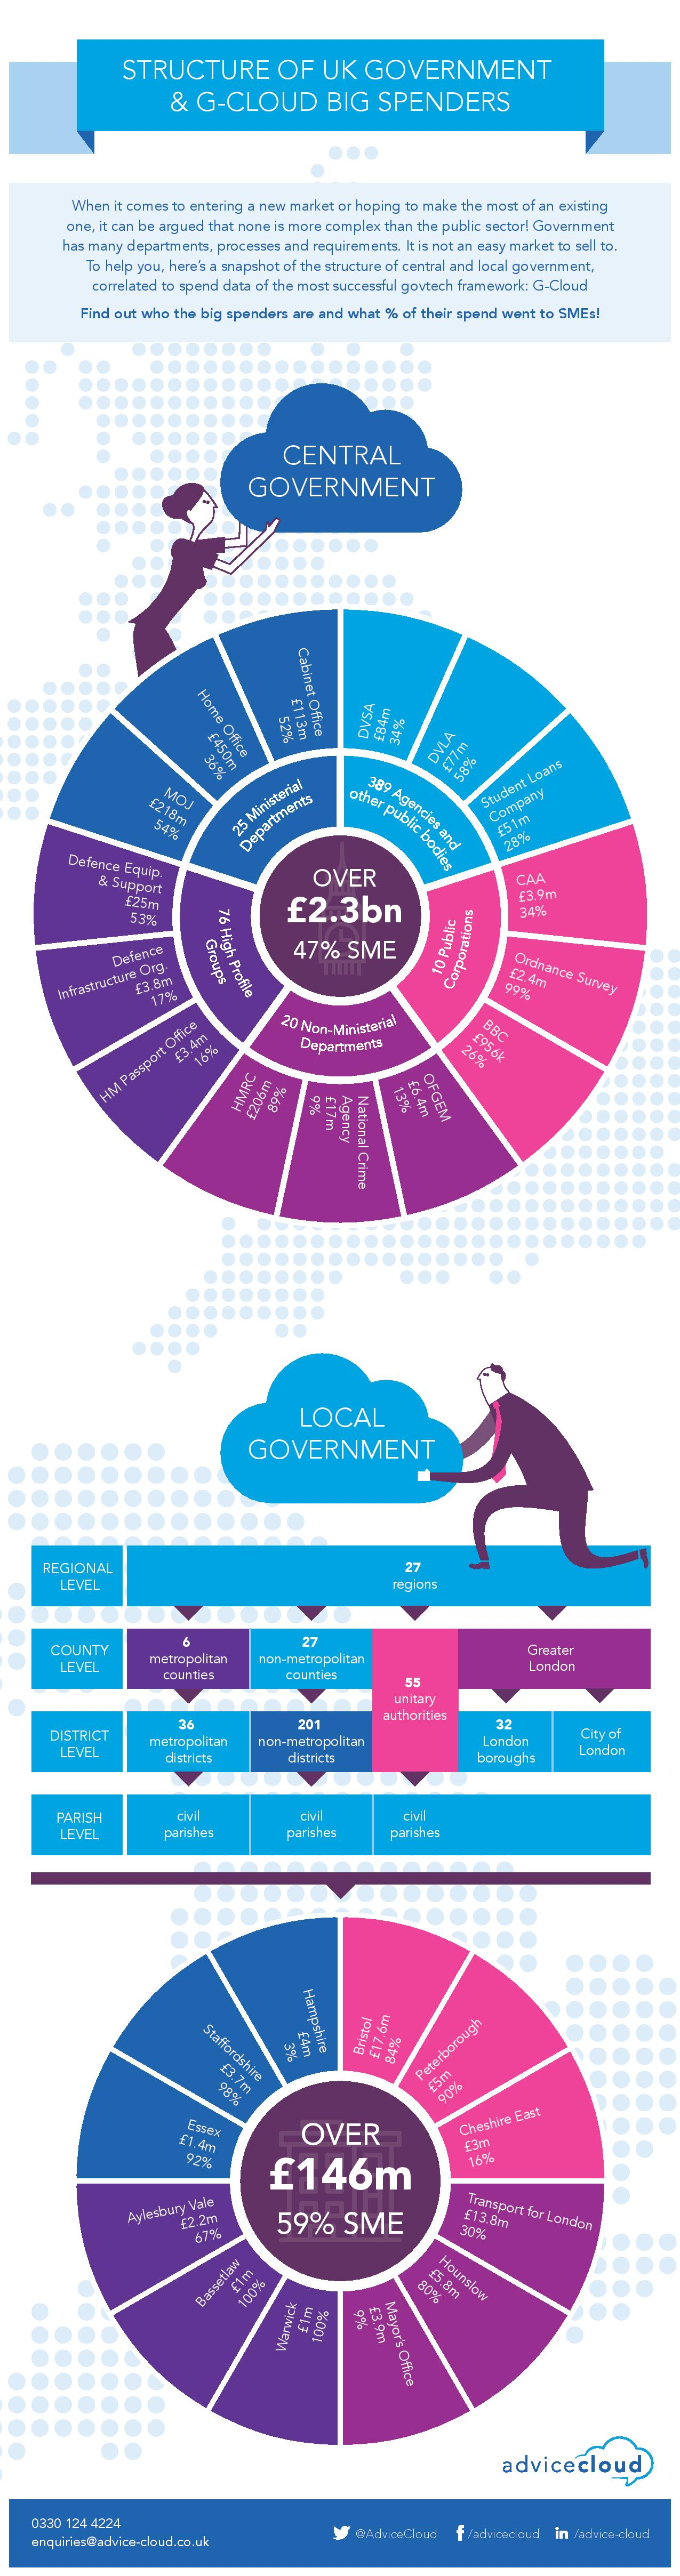 Structure of UK government and G-Cloud big spenders